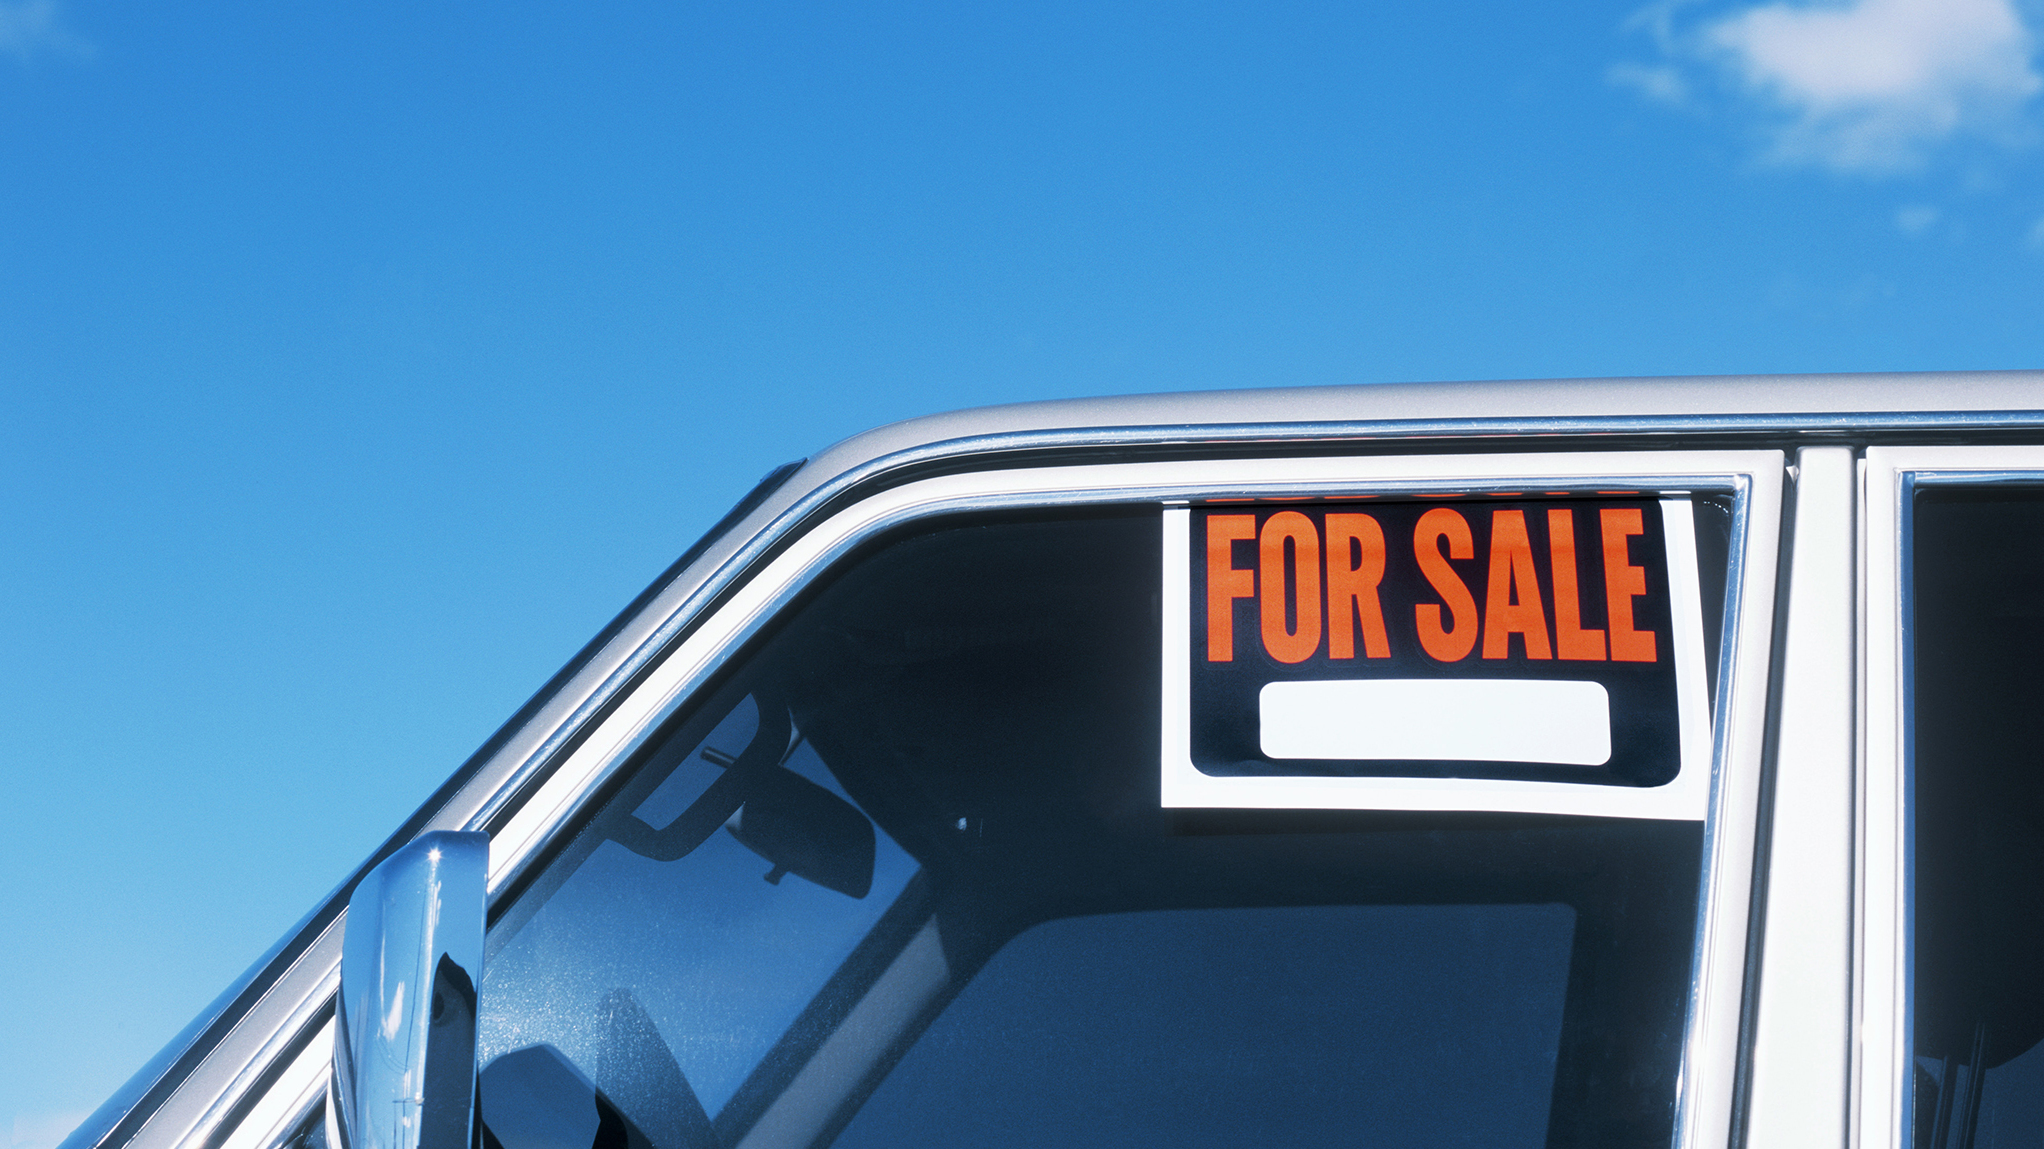 5 Tips For Buying A Car The Smart Way